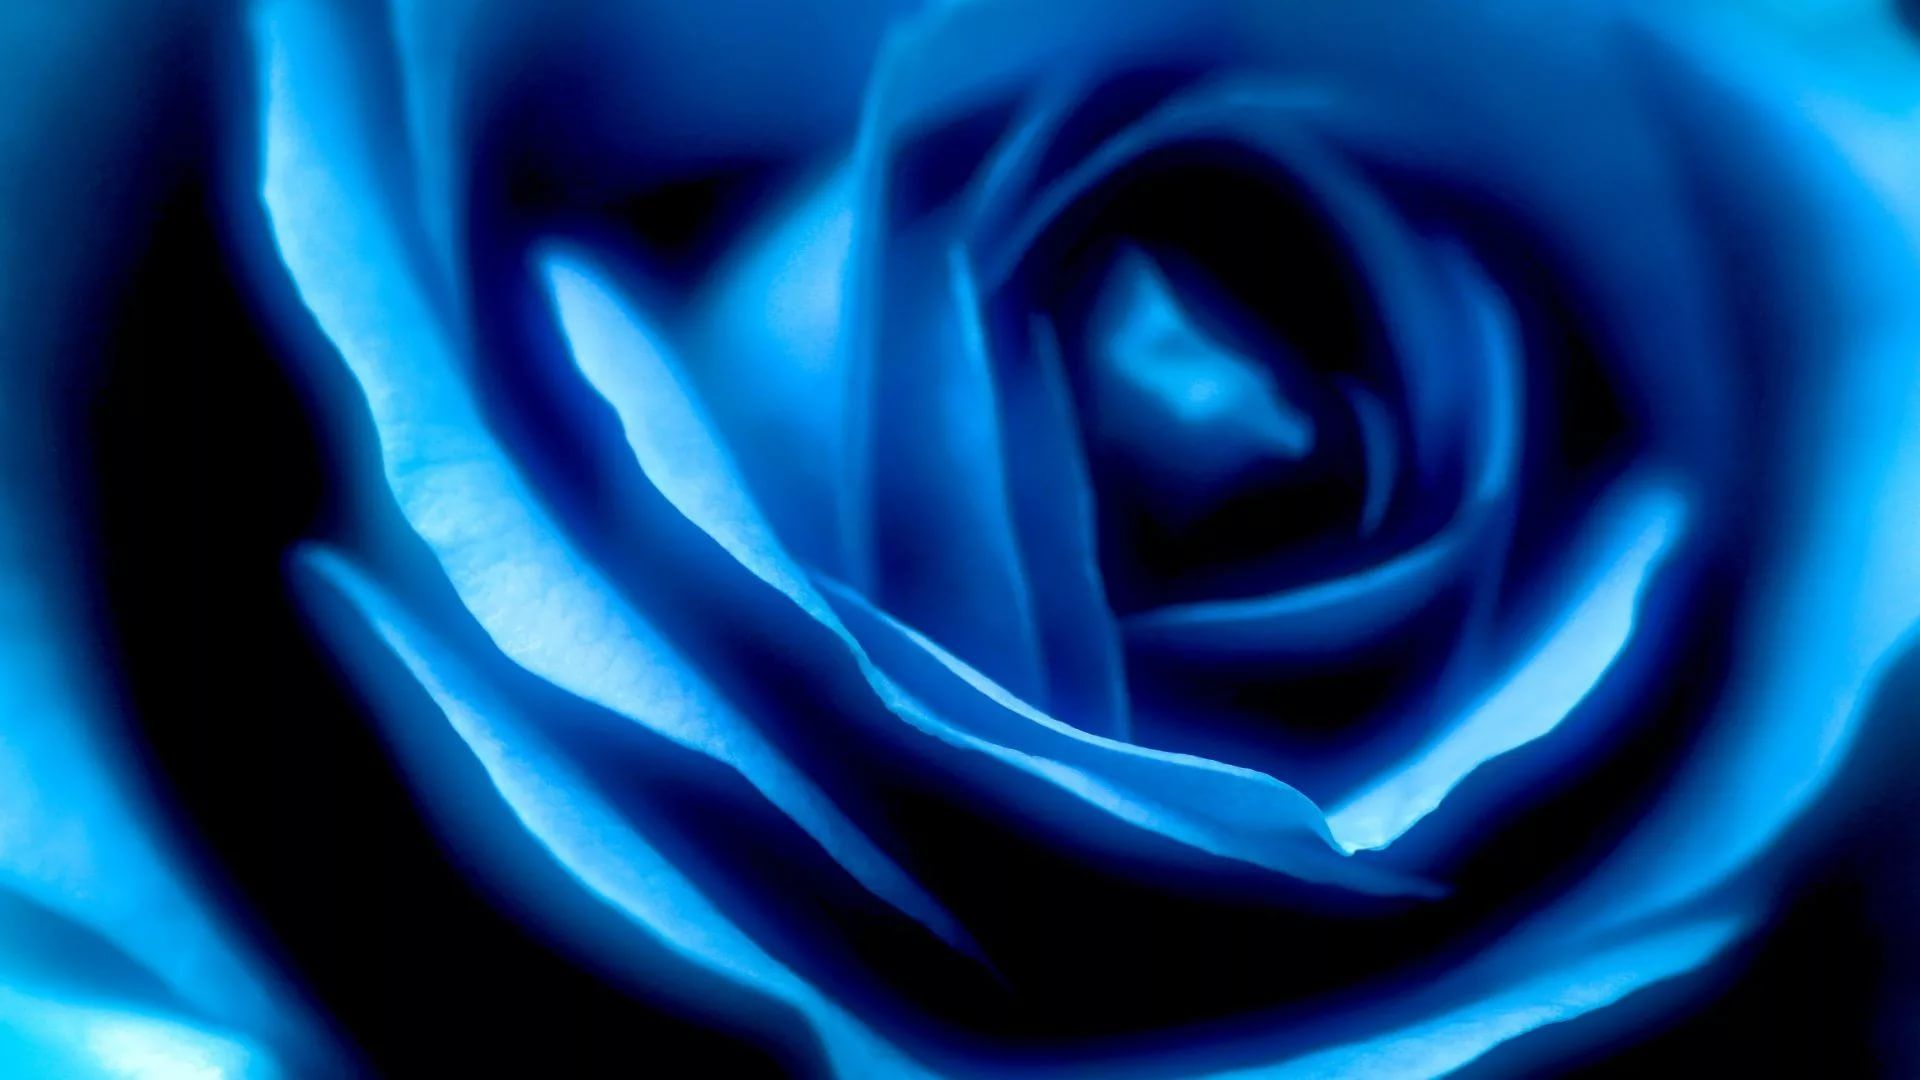 Blue Rose good wallpaper hd